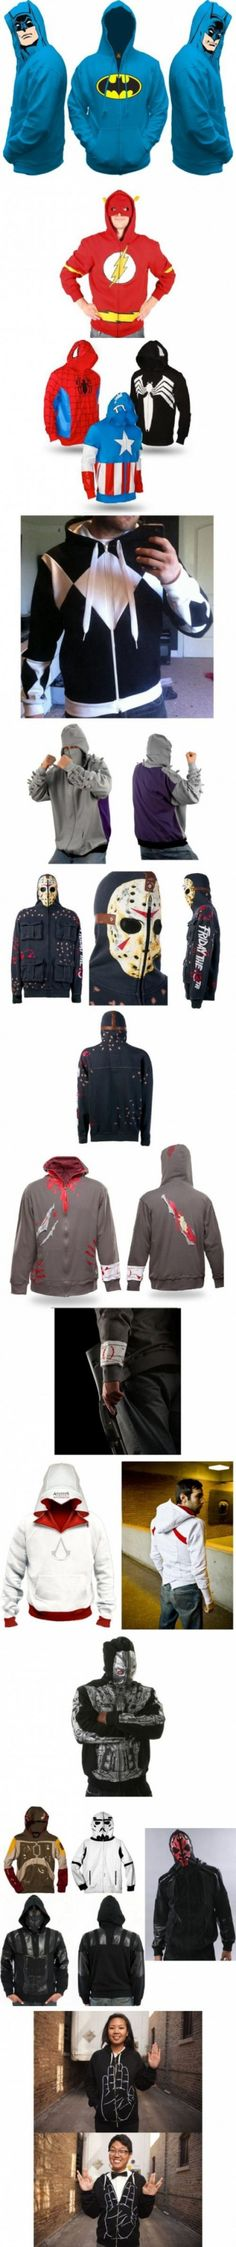 AWESOME hoodies and jackets - I want the assassin's creed one